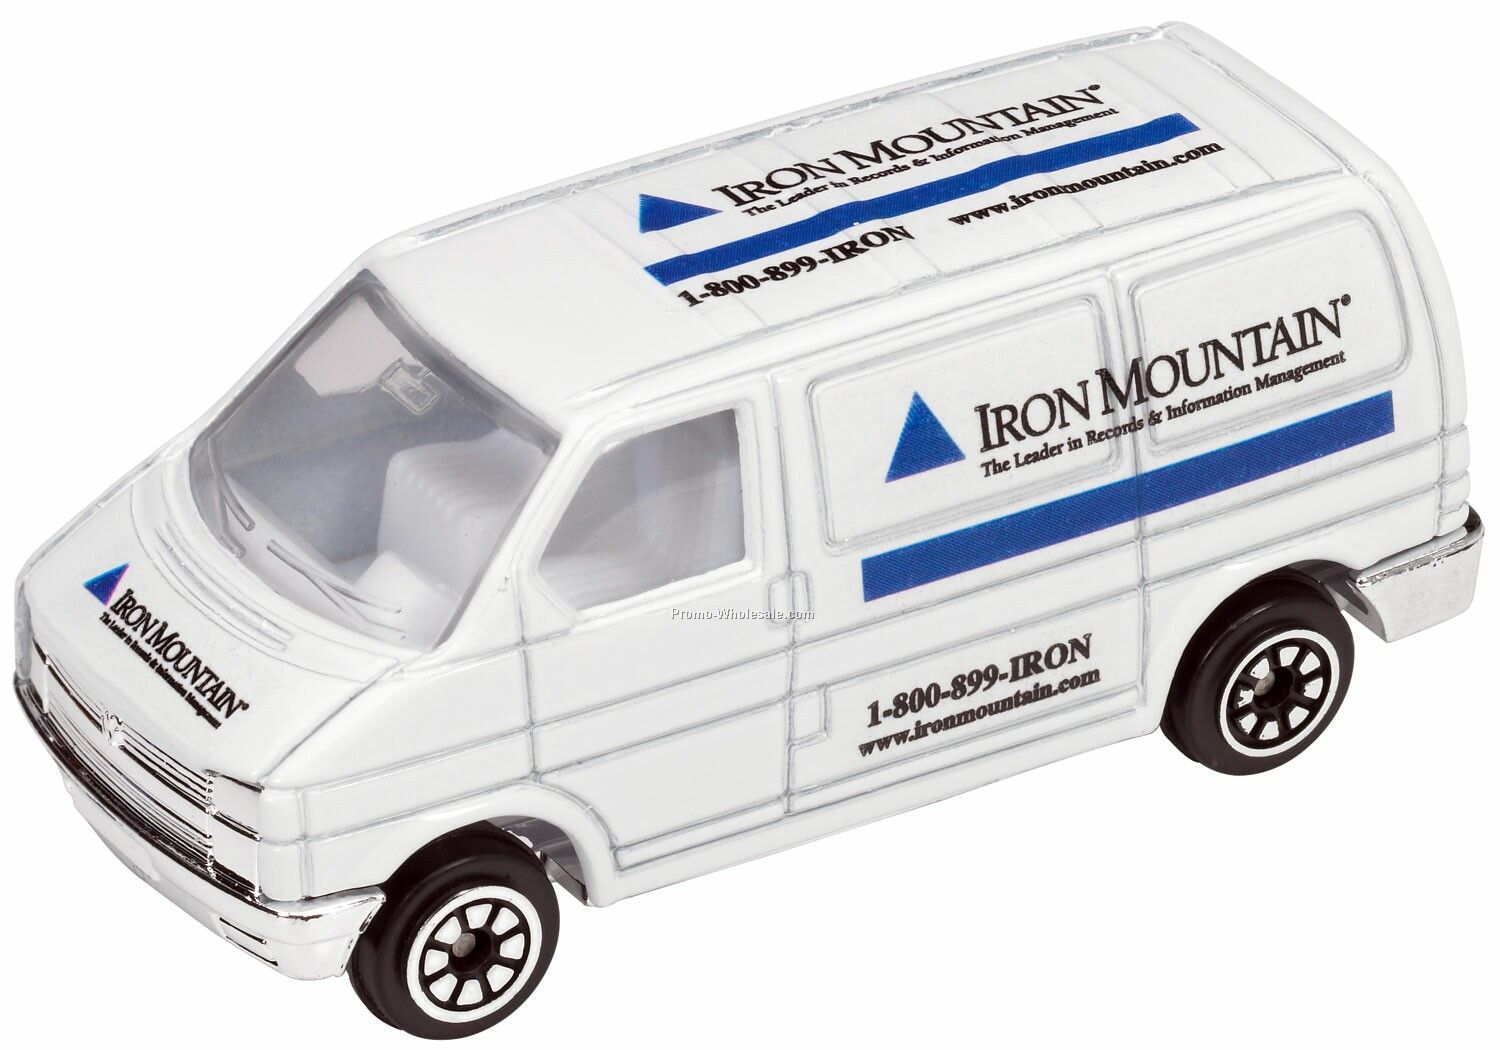 White Mini Van Die Cast Mini Vehicles - 3 Day